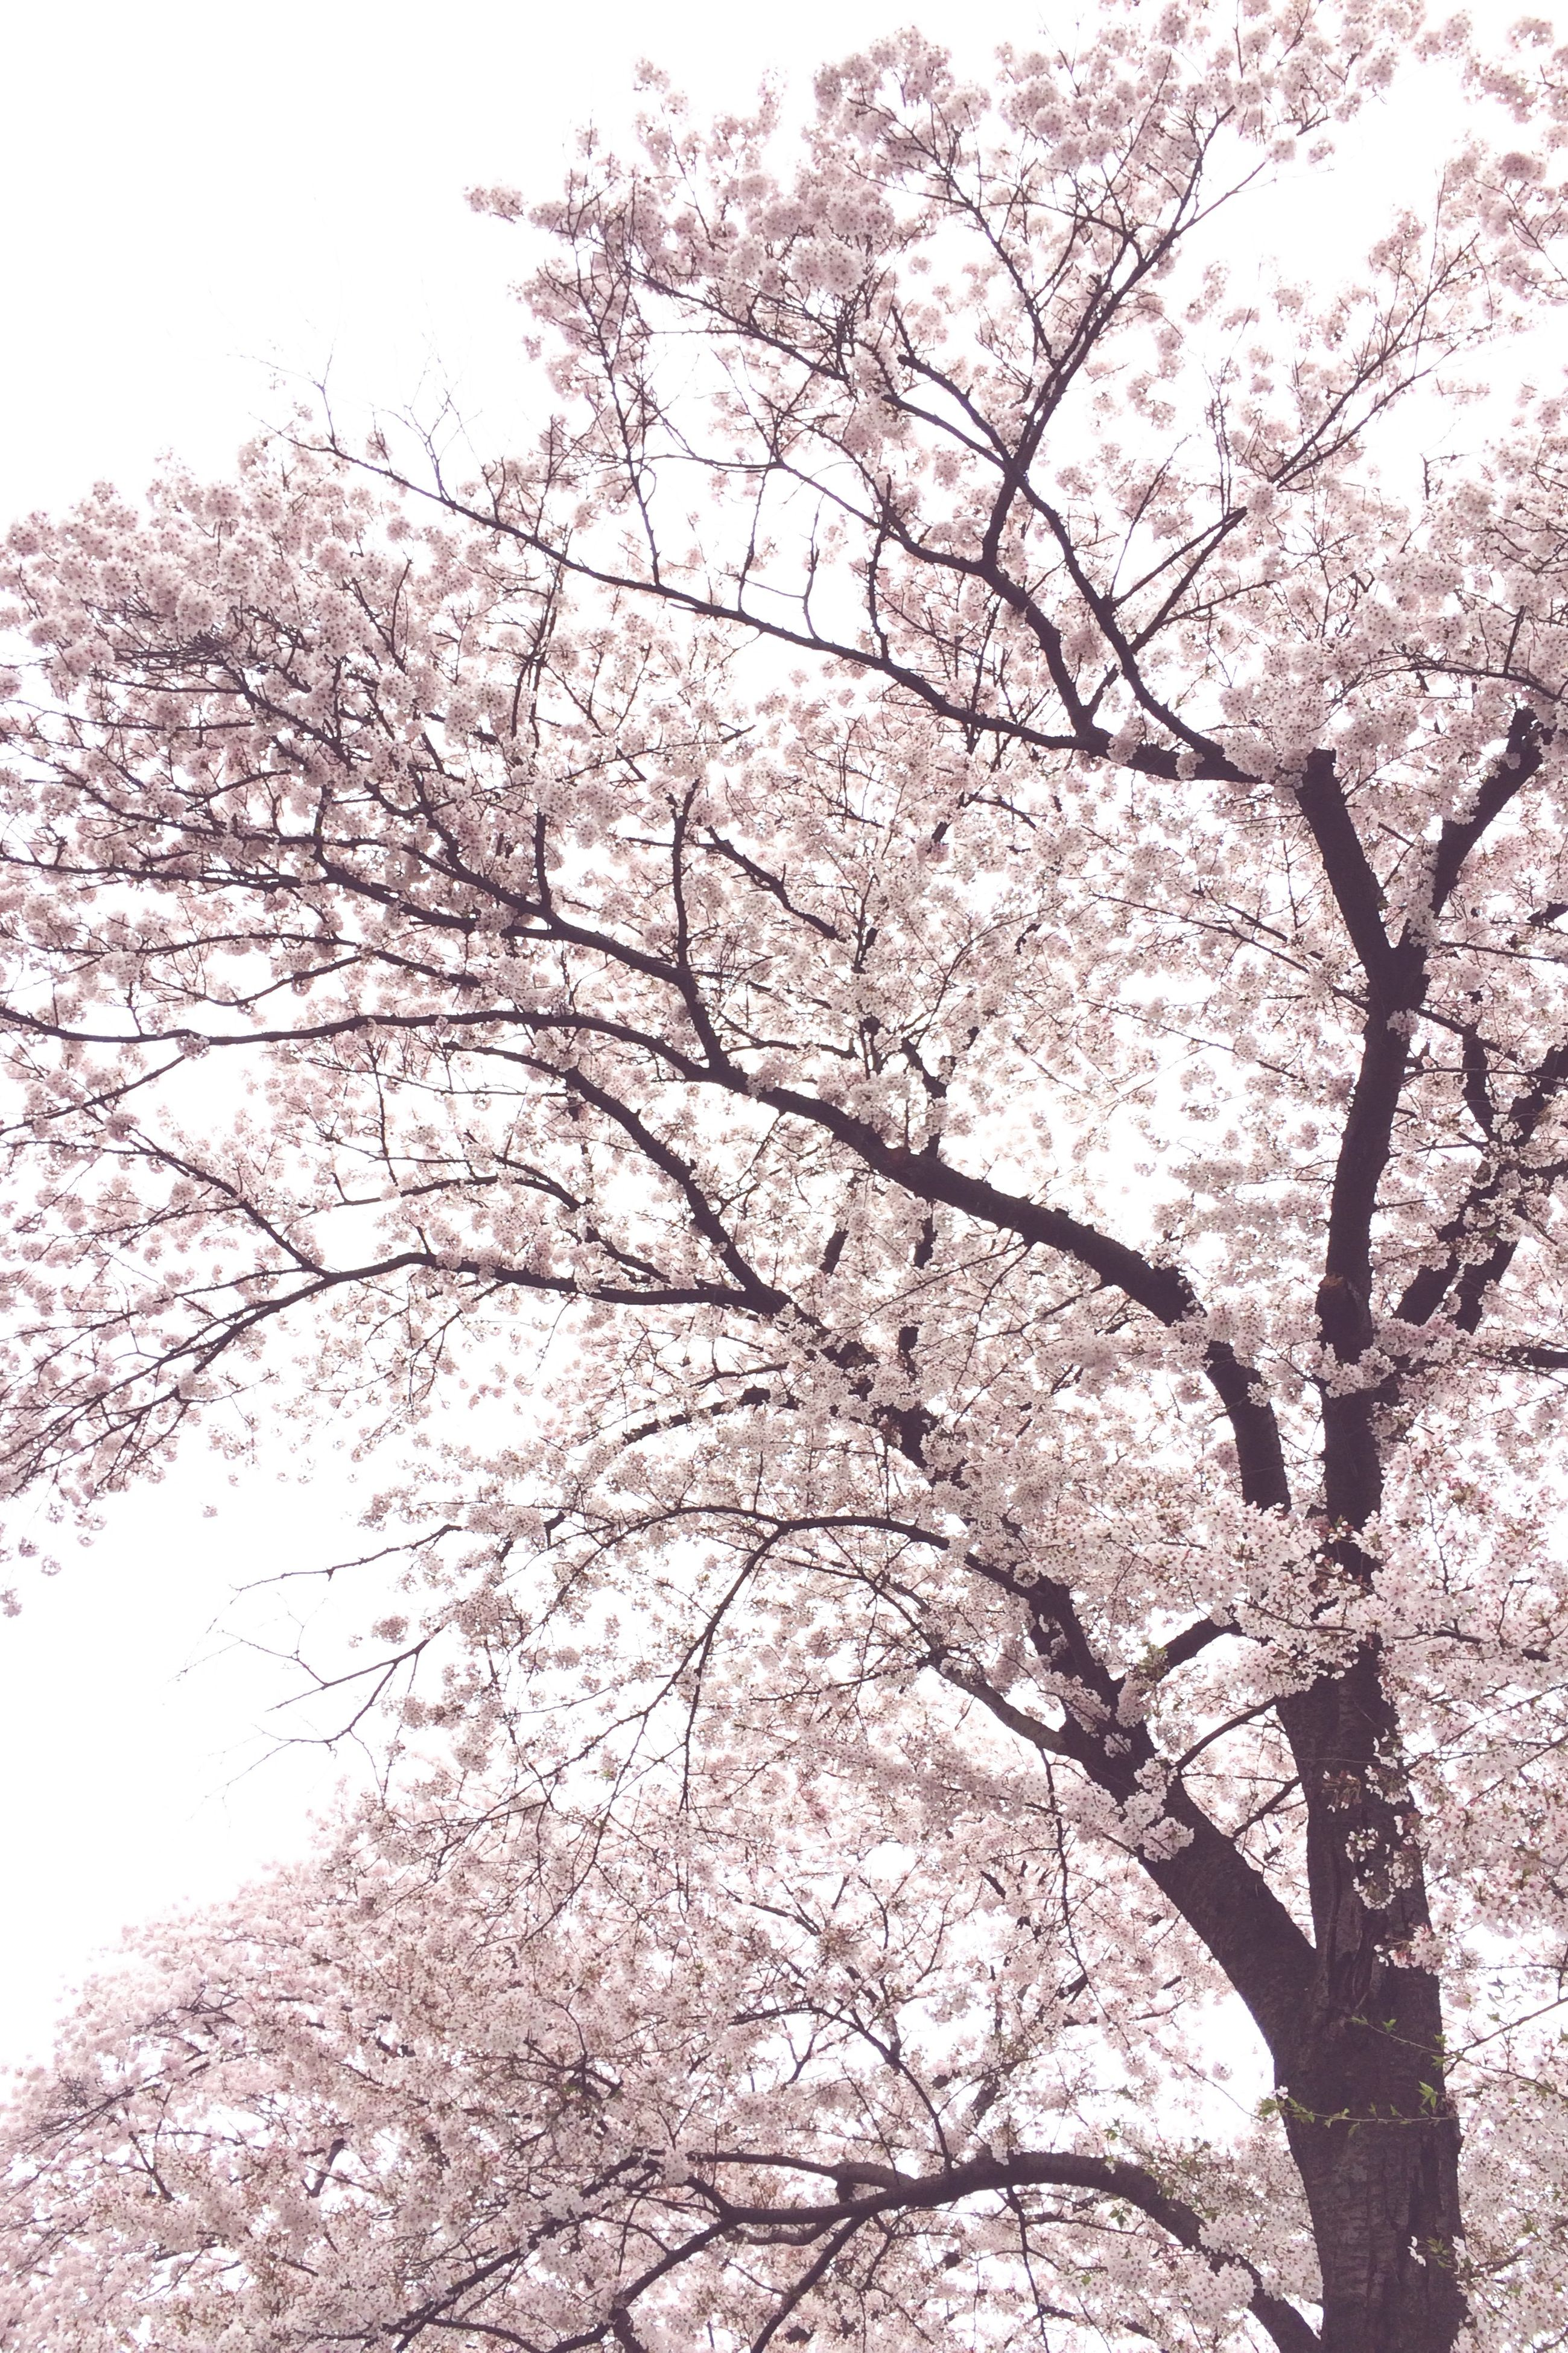 tree, branch, low angle view, growth, beauty in nature, nature, sky, cherry blossom, bare tree, tranquility, cherry tree, flower, clear sky, day, blossom, outdoors, scenics, freshness, no people, springtime